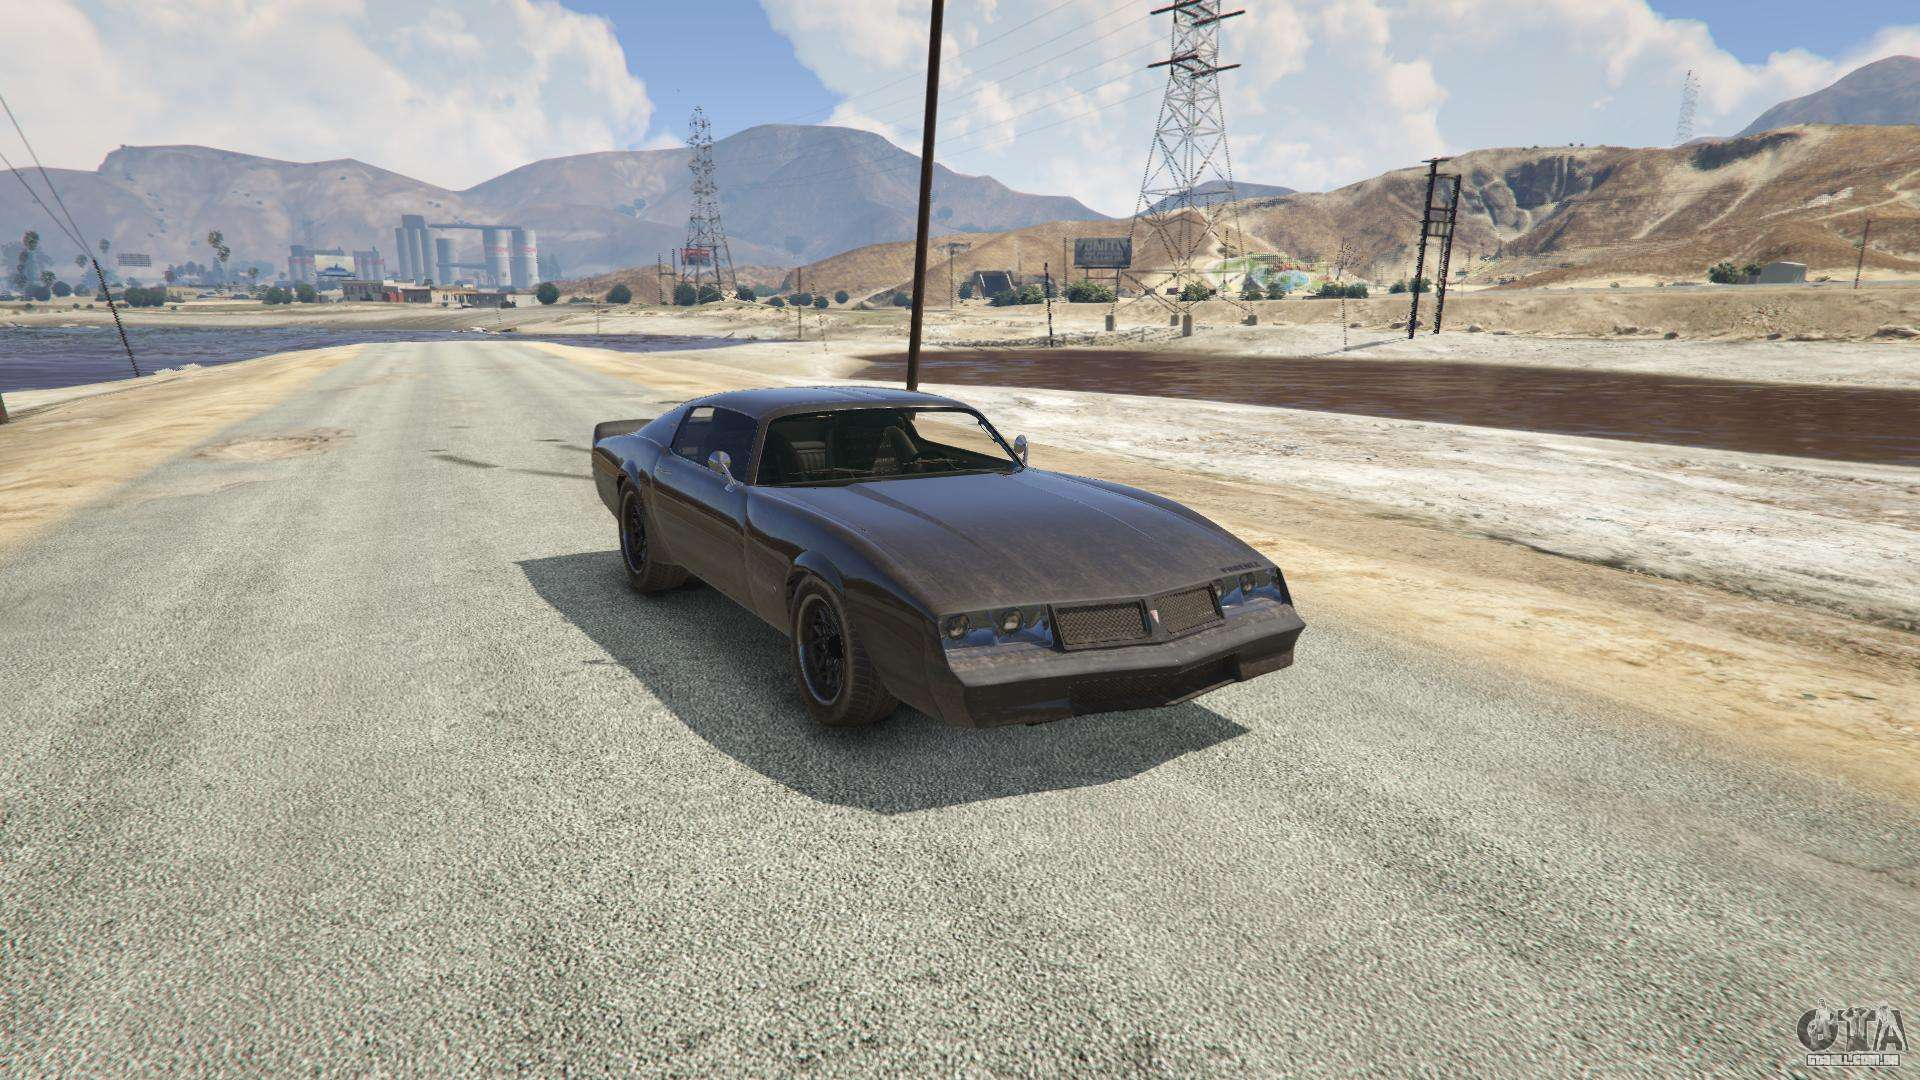 Phoenix do GTA 5 - vista frontal